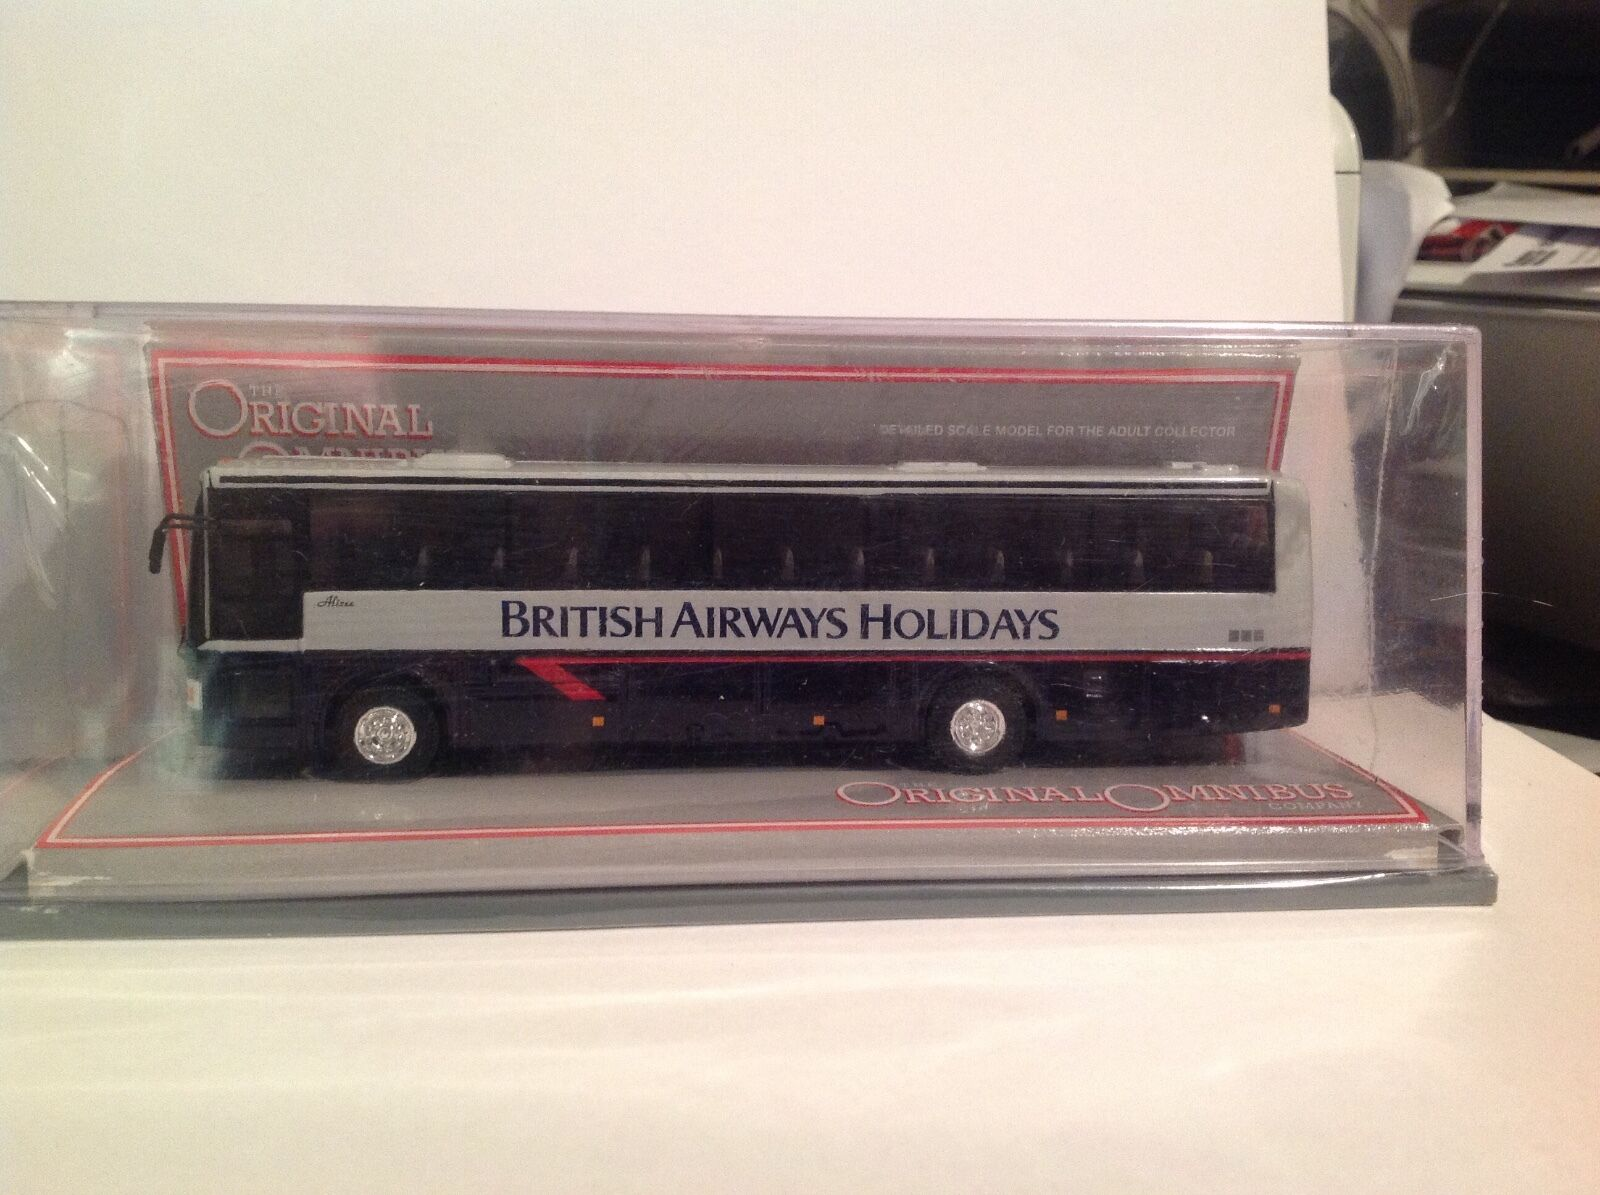 OM42729 Van Hool Alizee British Airways Holidays LTD Edition No. 0002 of 2600